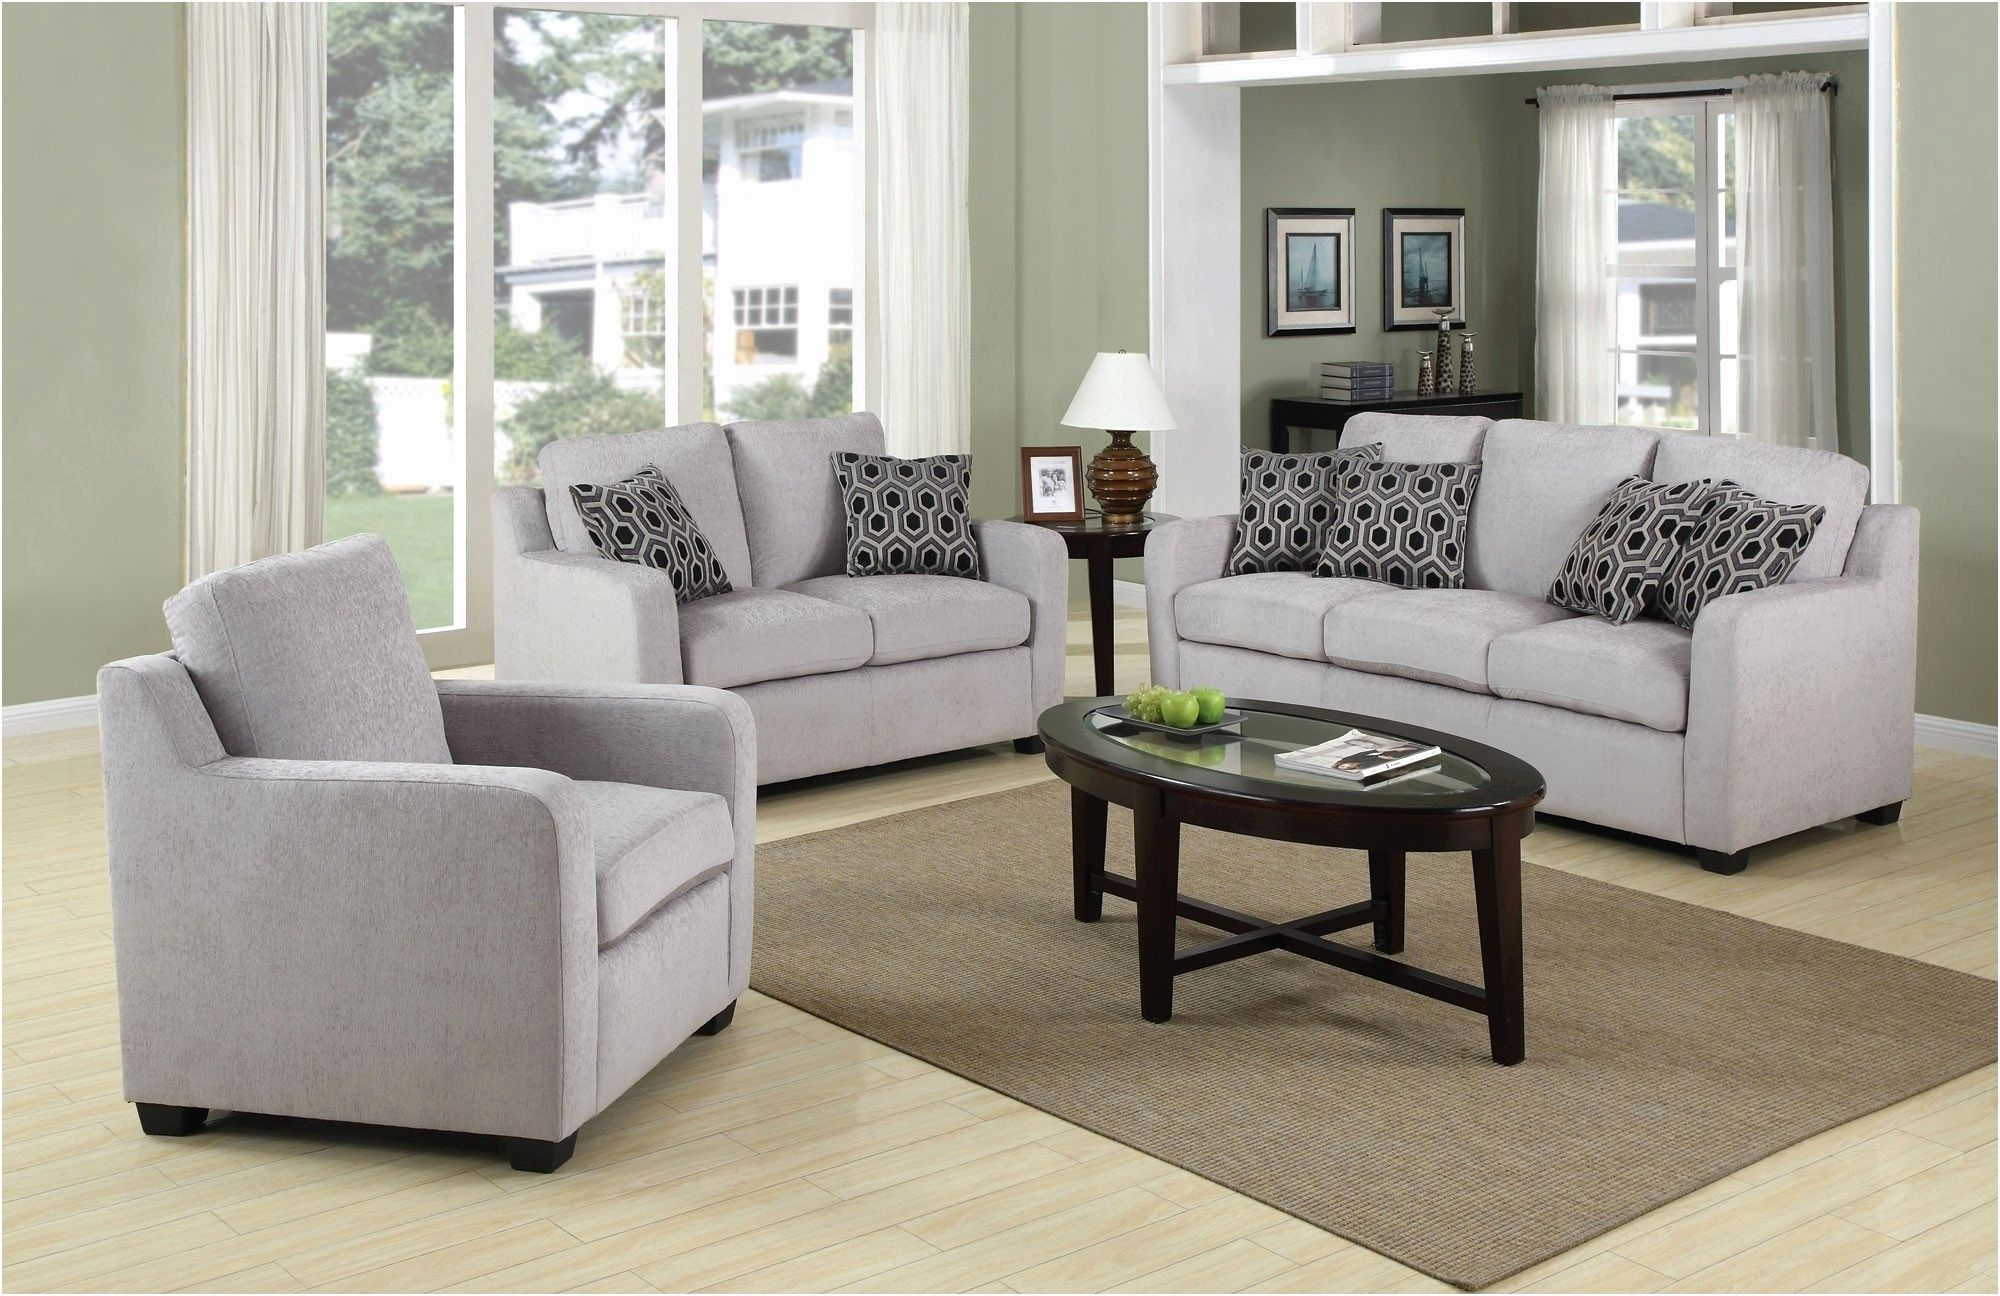 Cheap Living Room Sets Under 500 Frankfurt Good Sofa And Loveseat Picture Best Of